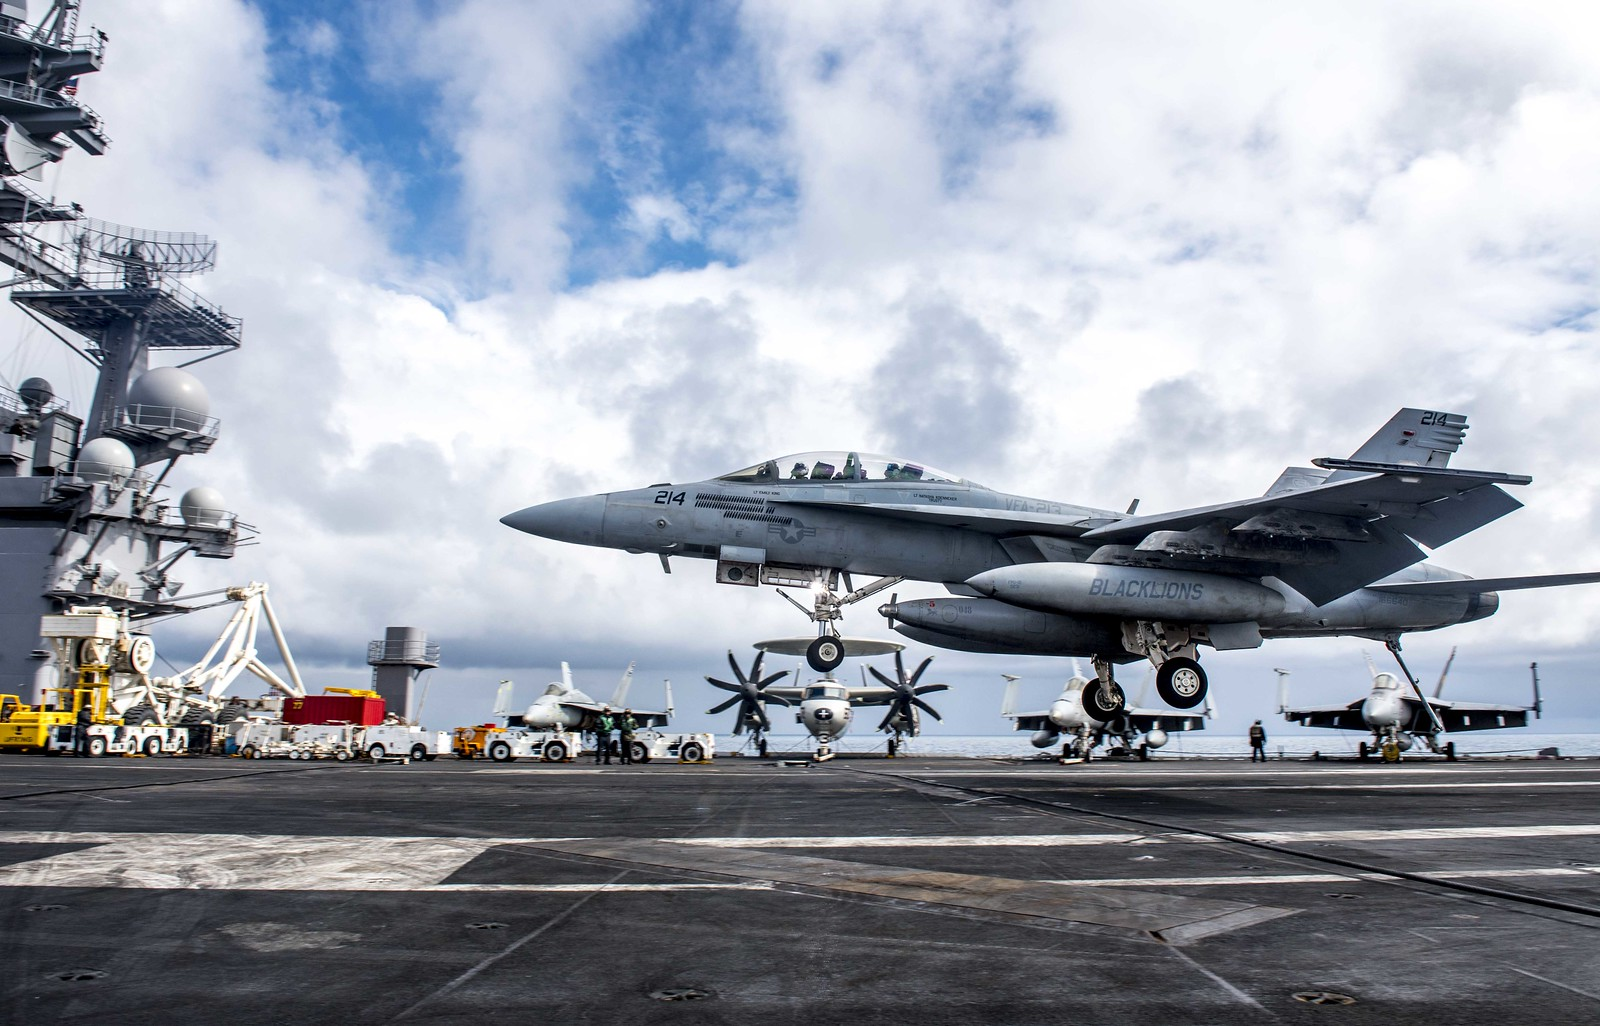 An F/A-18F Super Hornet lands aboard USS George H.W. Bush during exercise Saxon Warrior 2017.